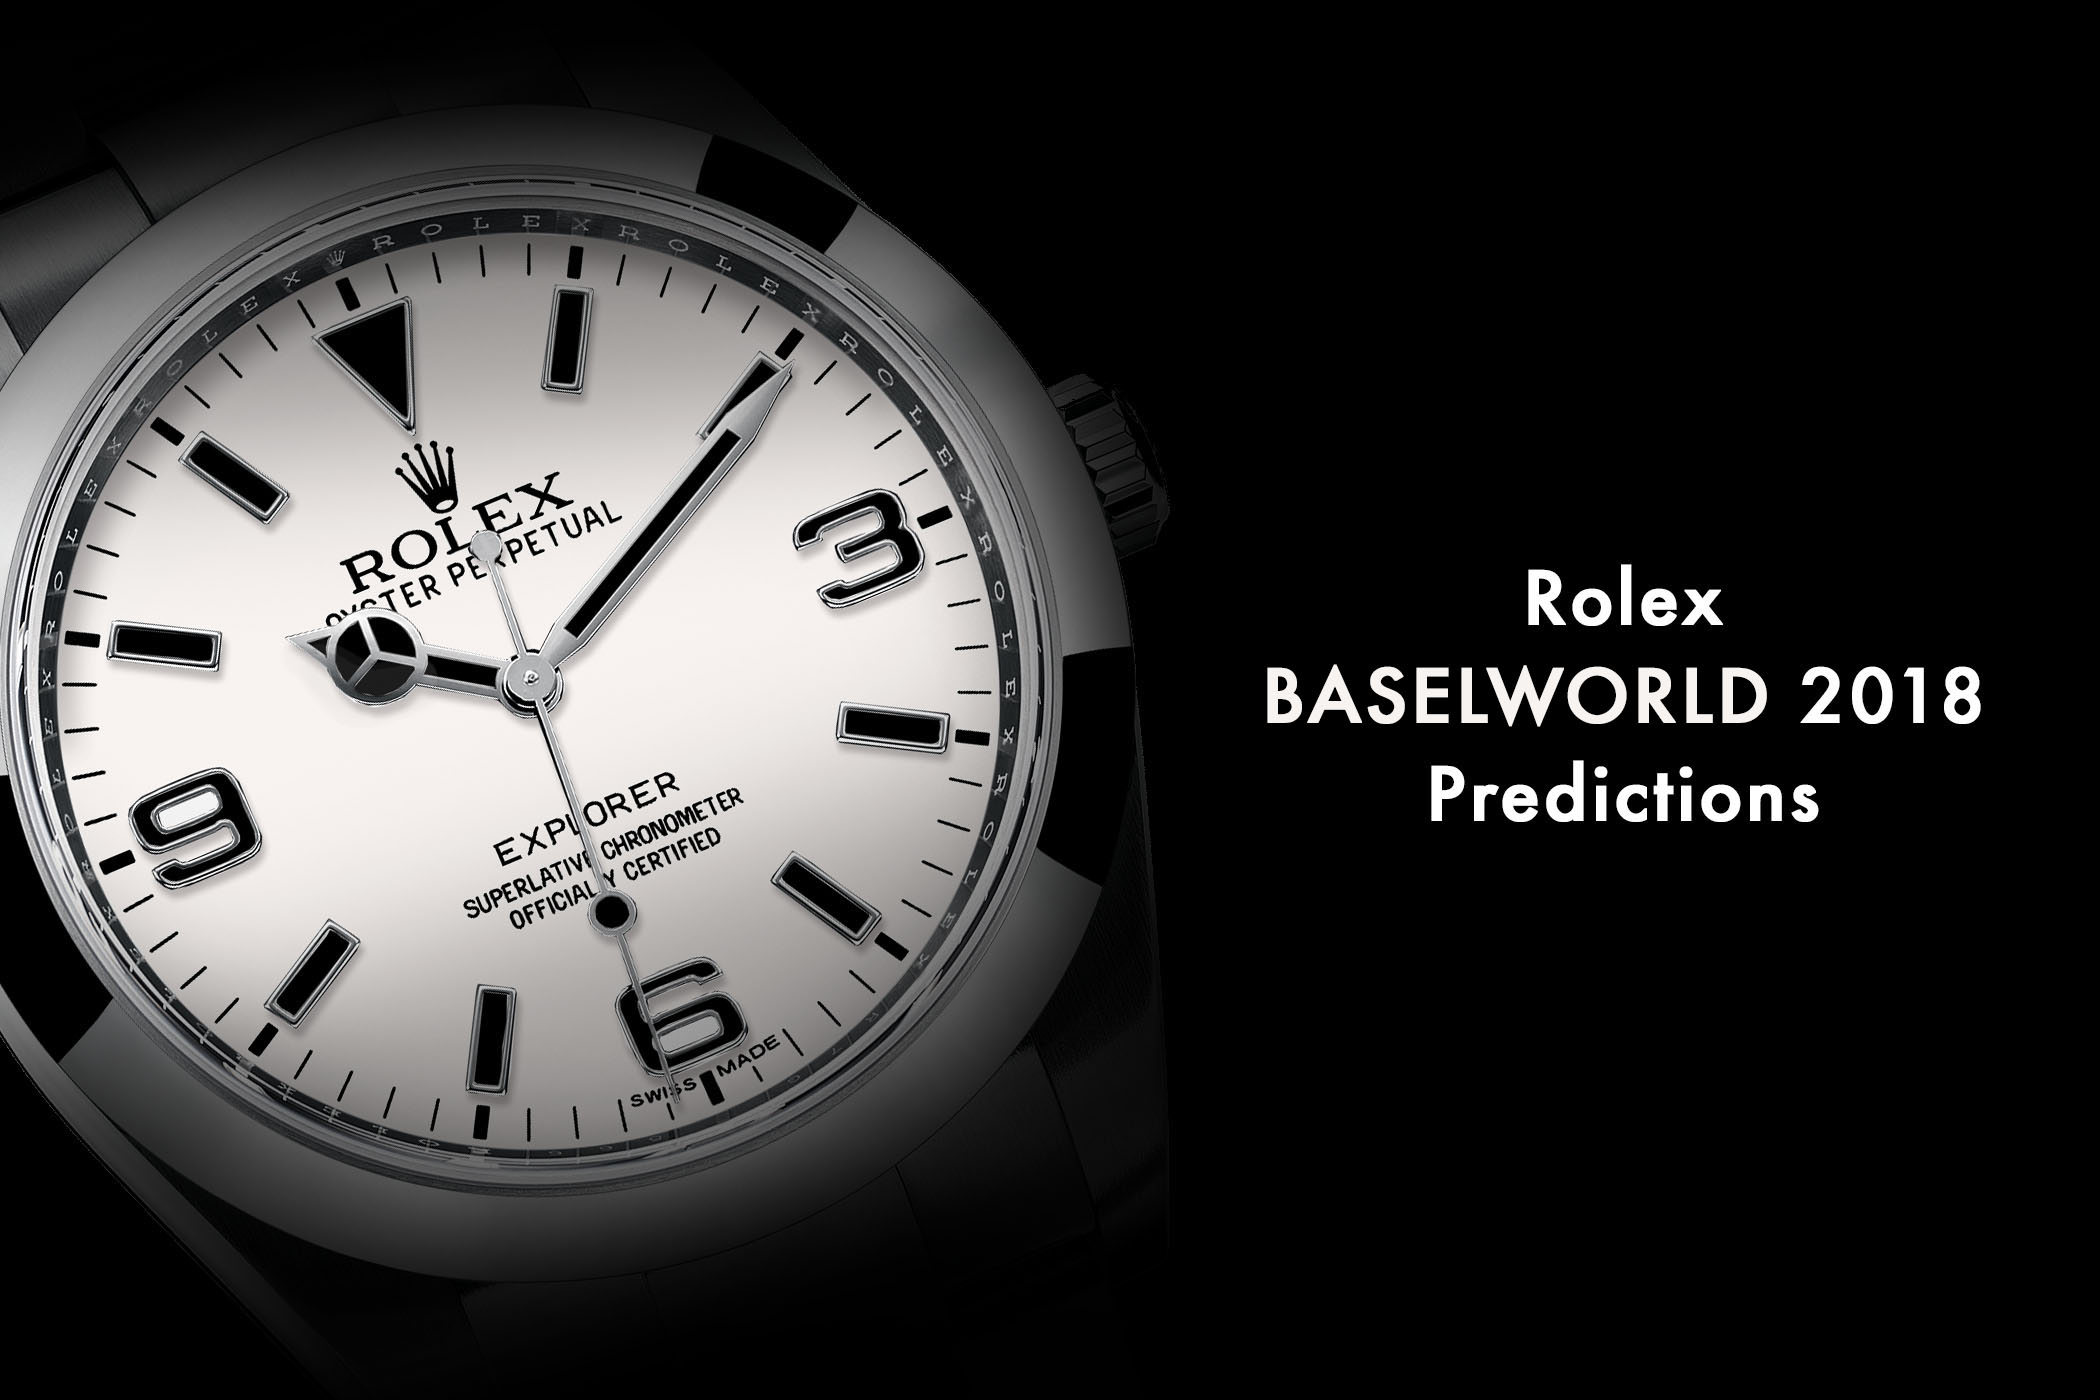 Rolex Baselworld 2018 - Rolex Predictions 2018 - Rolex Novelties 2018